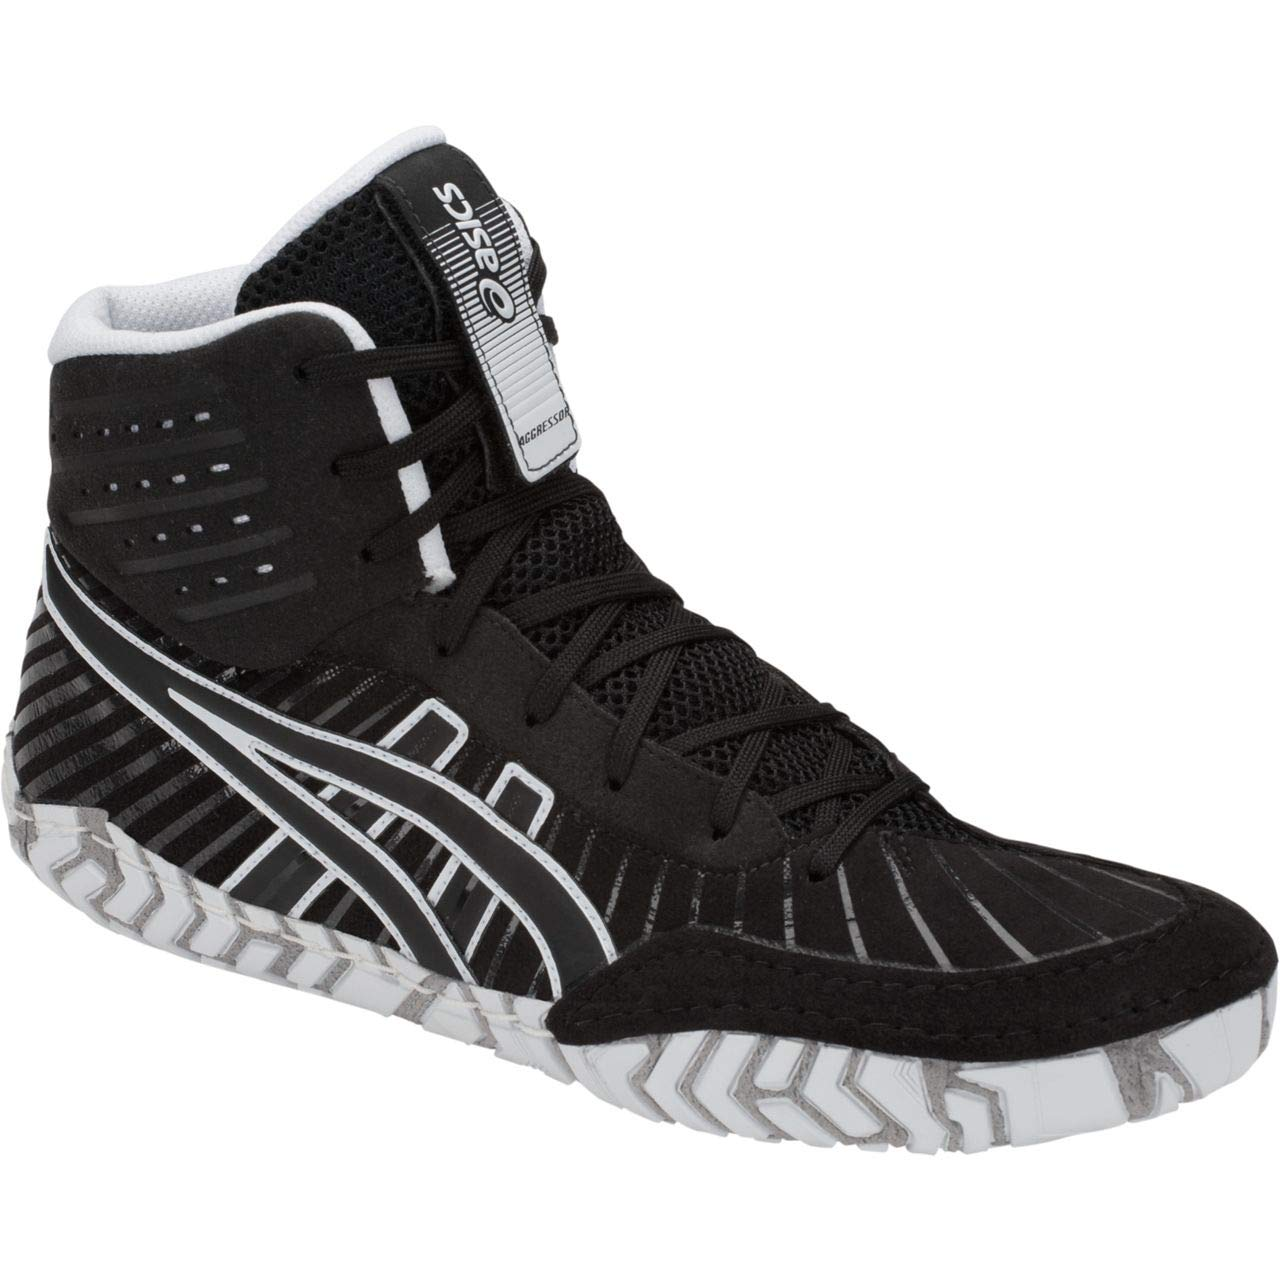 ASICS Aggressor 4 Men's Wrestling Shoes 1081A001